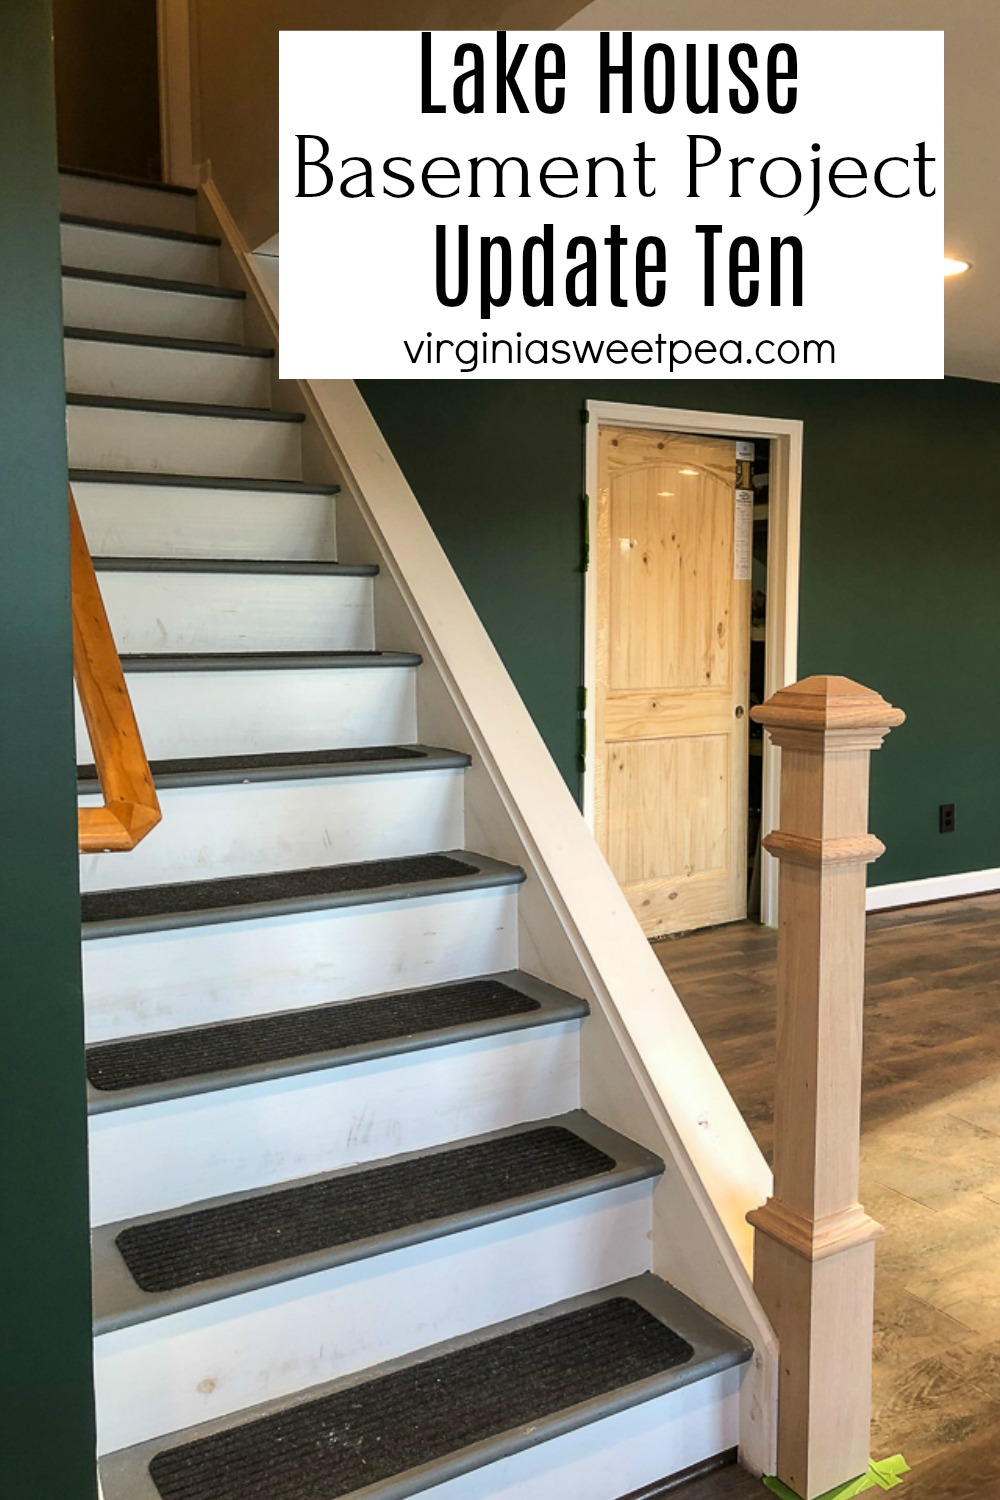 Lake House Basement Project - Update Ten - A newel post is installed, windows are framed, and plumbing work is done in the bathroom. via @spaula